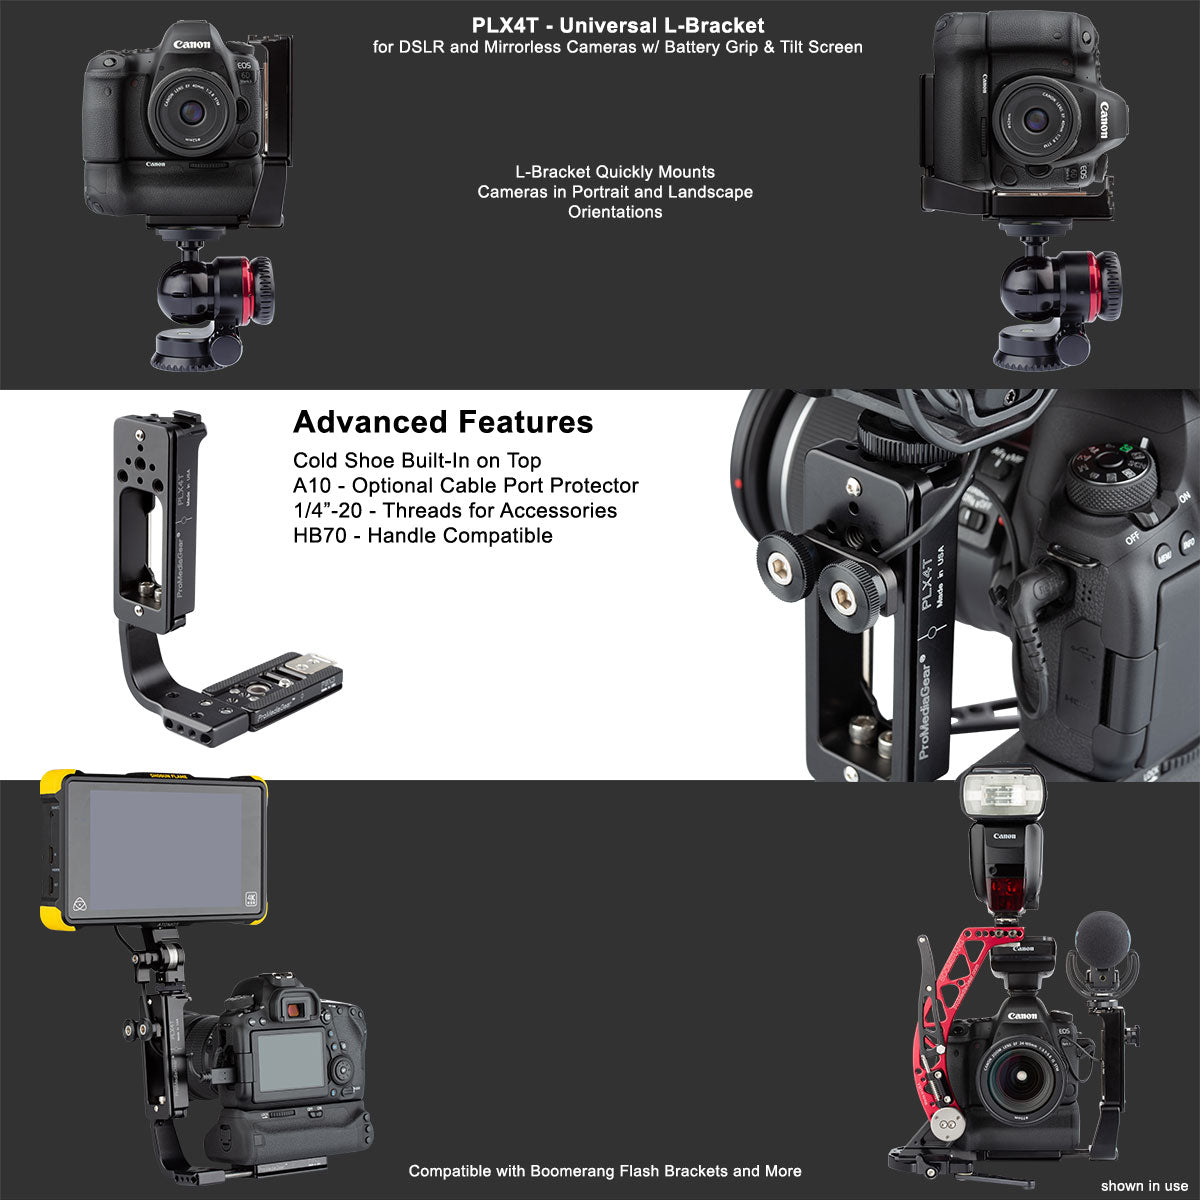 L-Bracket L-Plate for Professional Phtoographers, studio portrait landscape for DSLR and Mirrorless cameras from Sony Nikon and Canon 1dx 5D 7D 90D